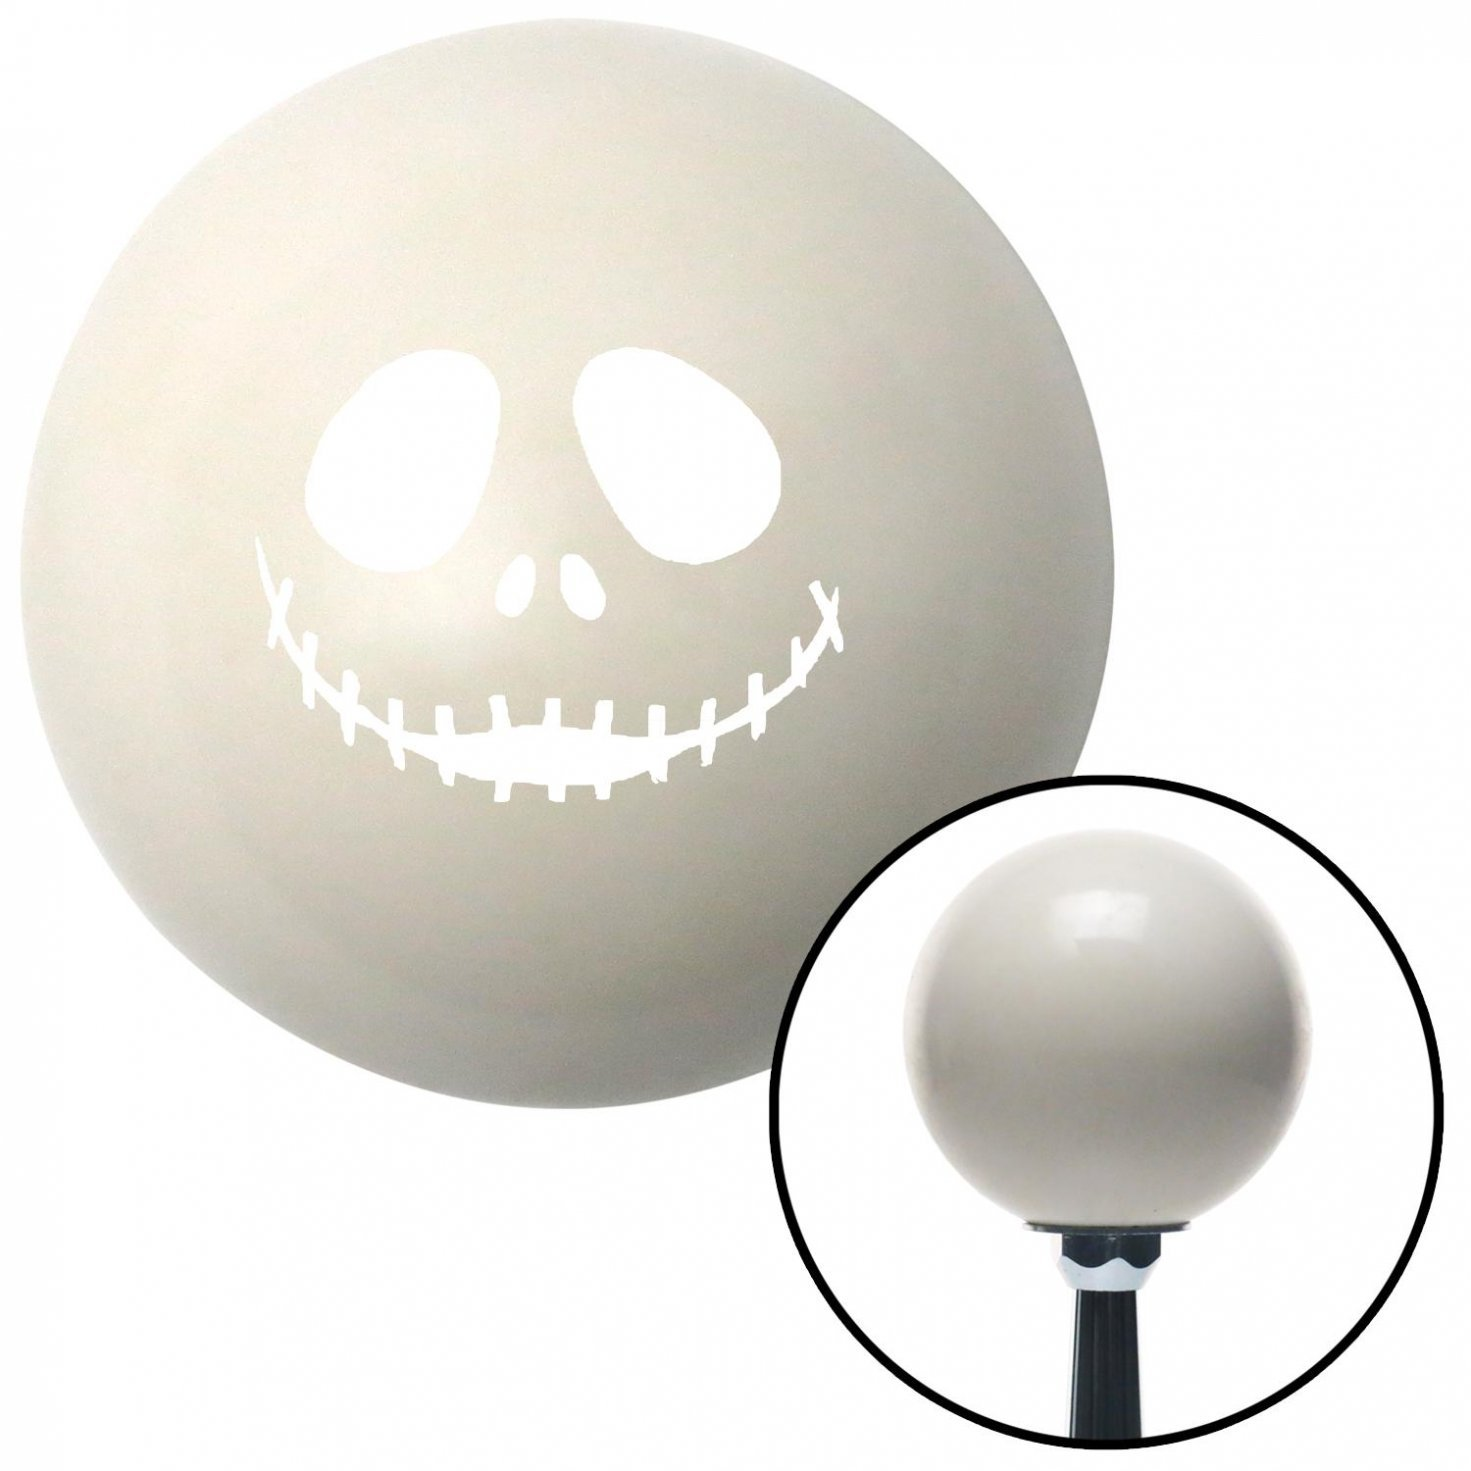 White Jack Zippered Mouth American Shifter 29549 Ivory Shift Knob with 16mm x 1.5 Insert